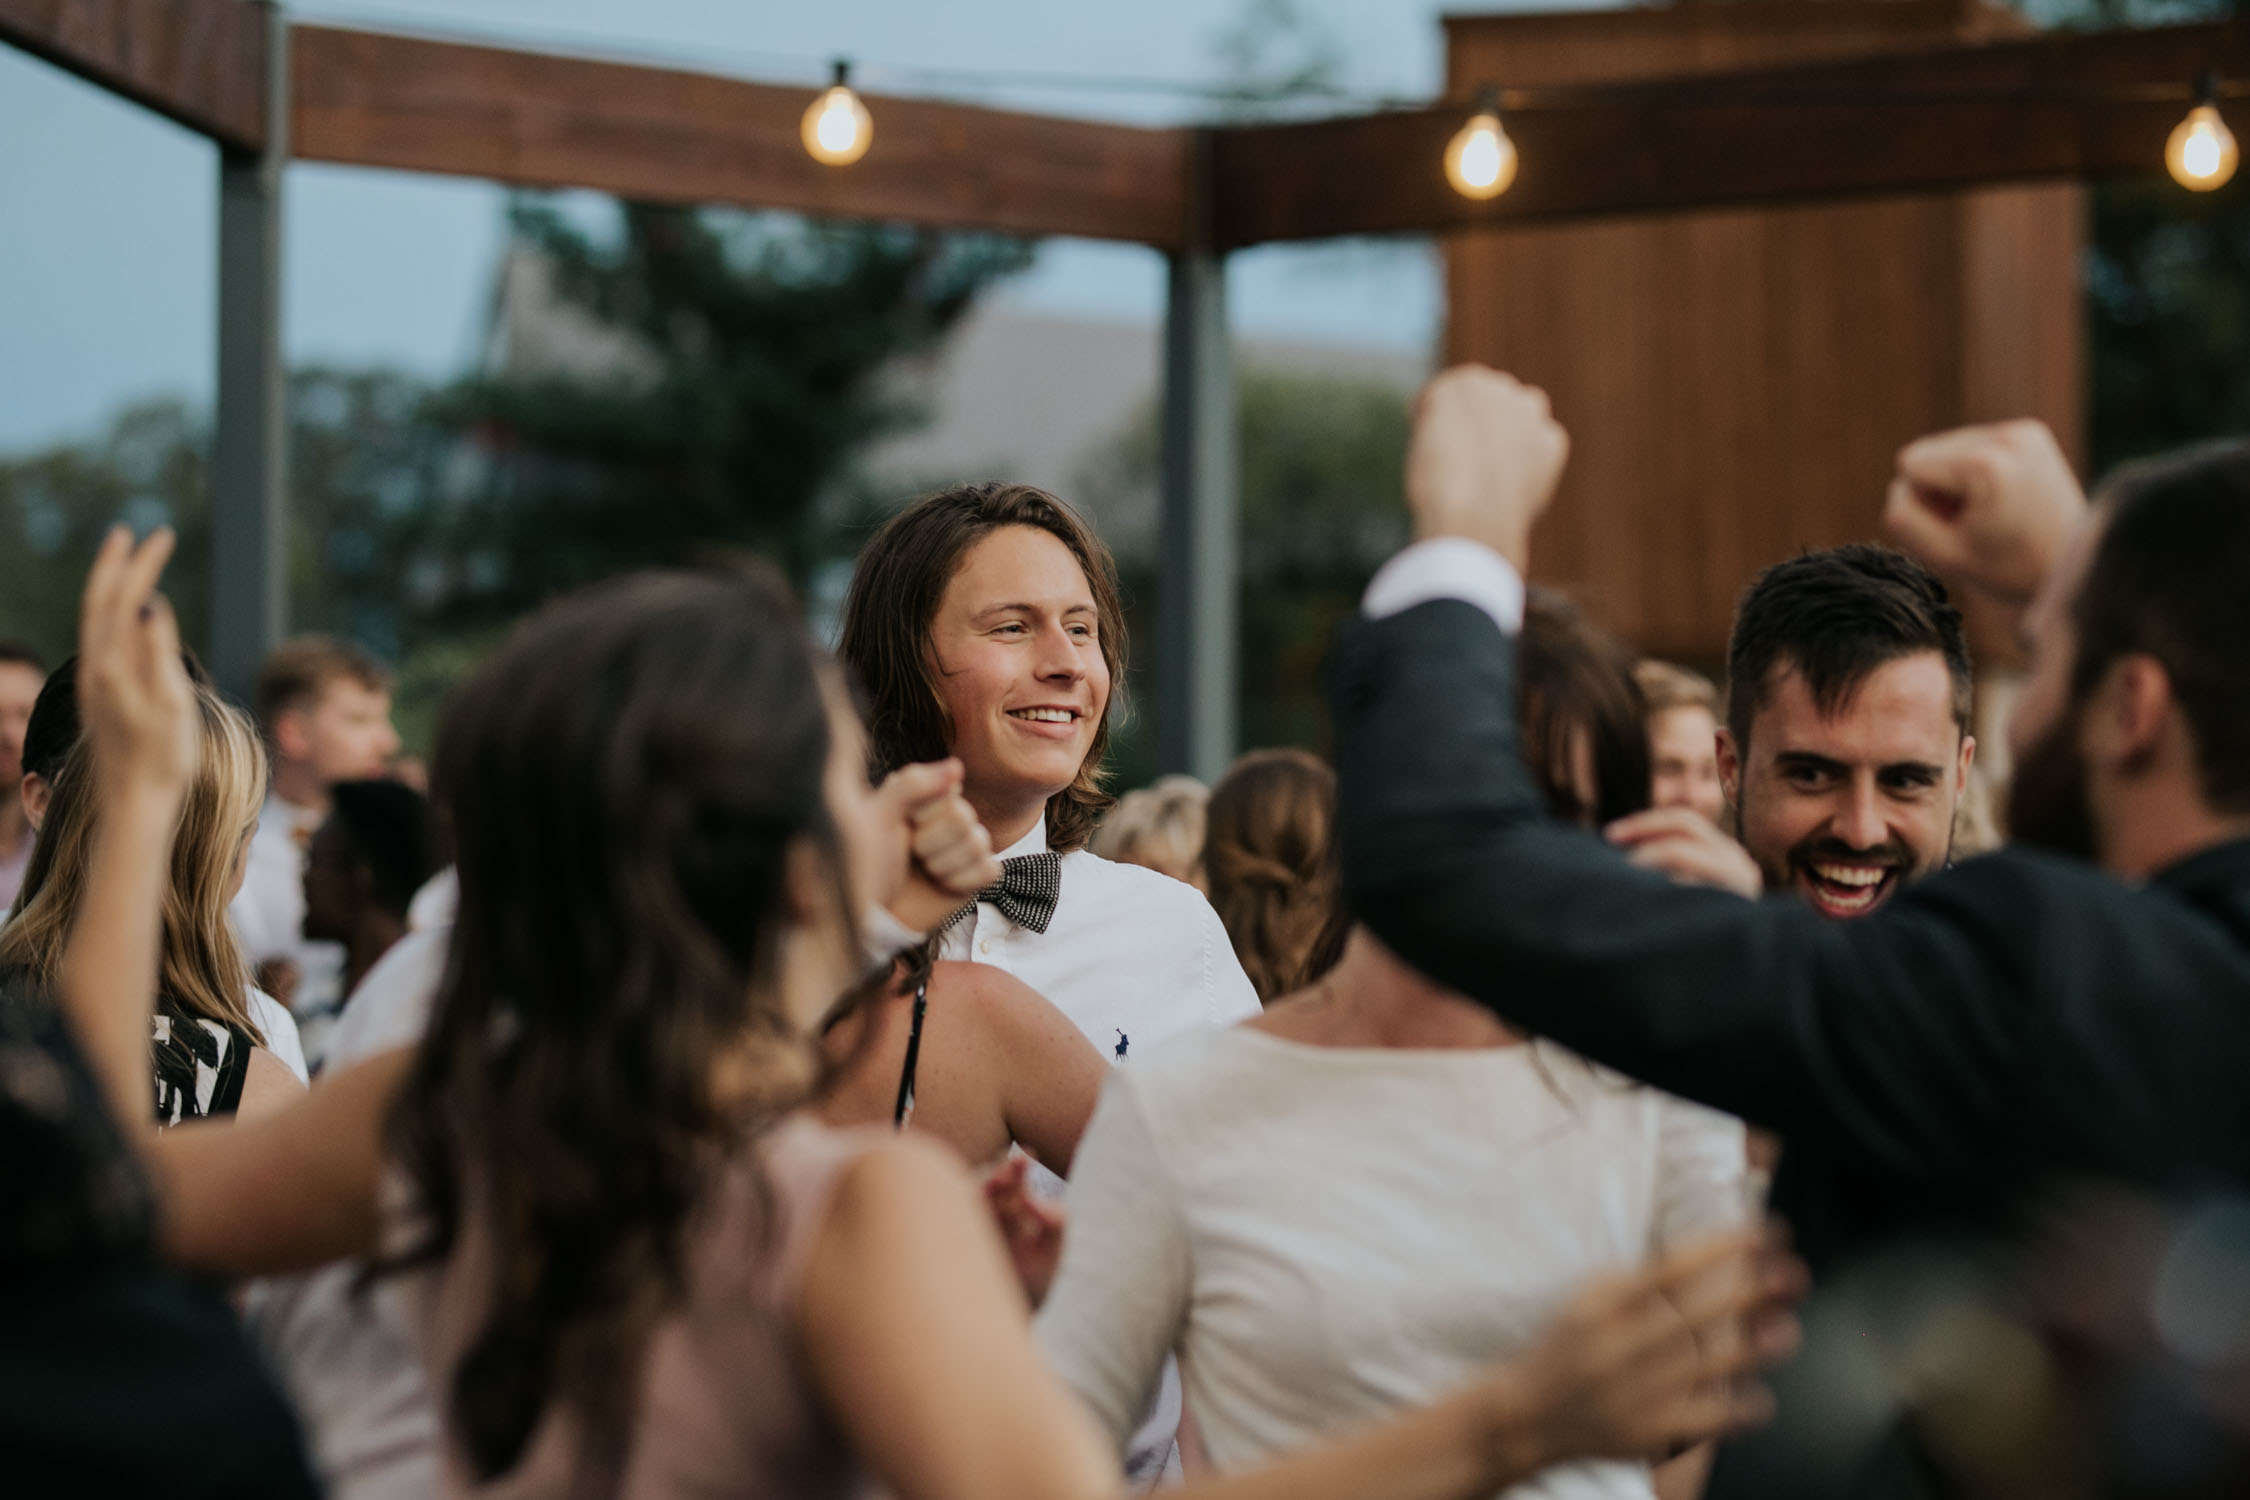 Epic dance photos at wedding using natural light and no camera flash